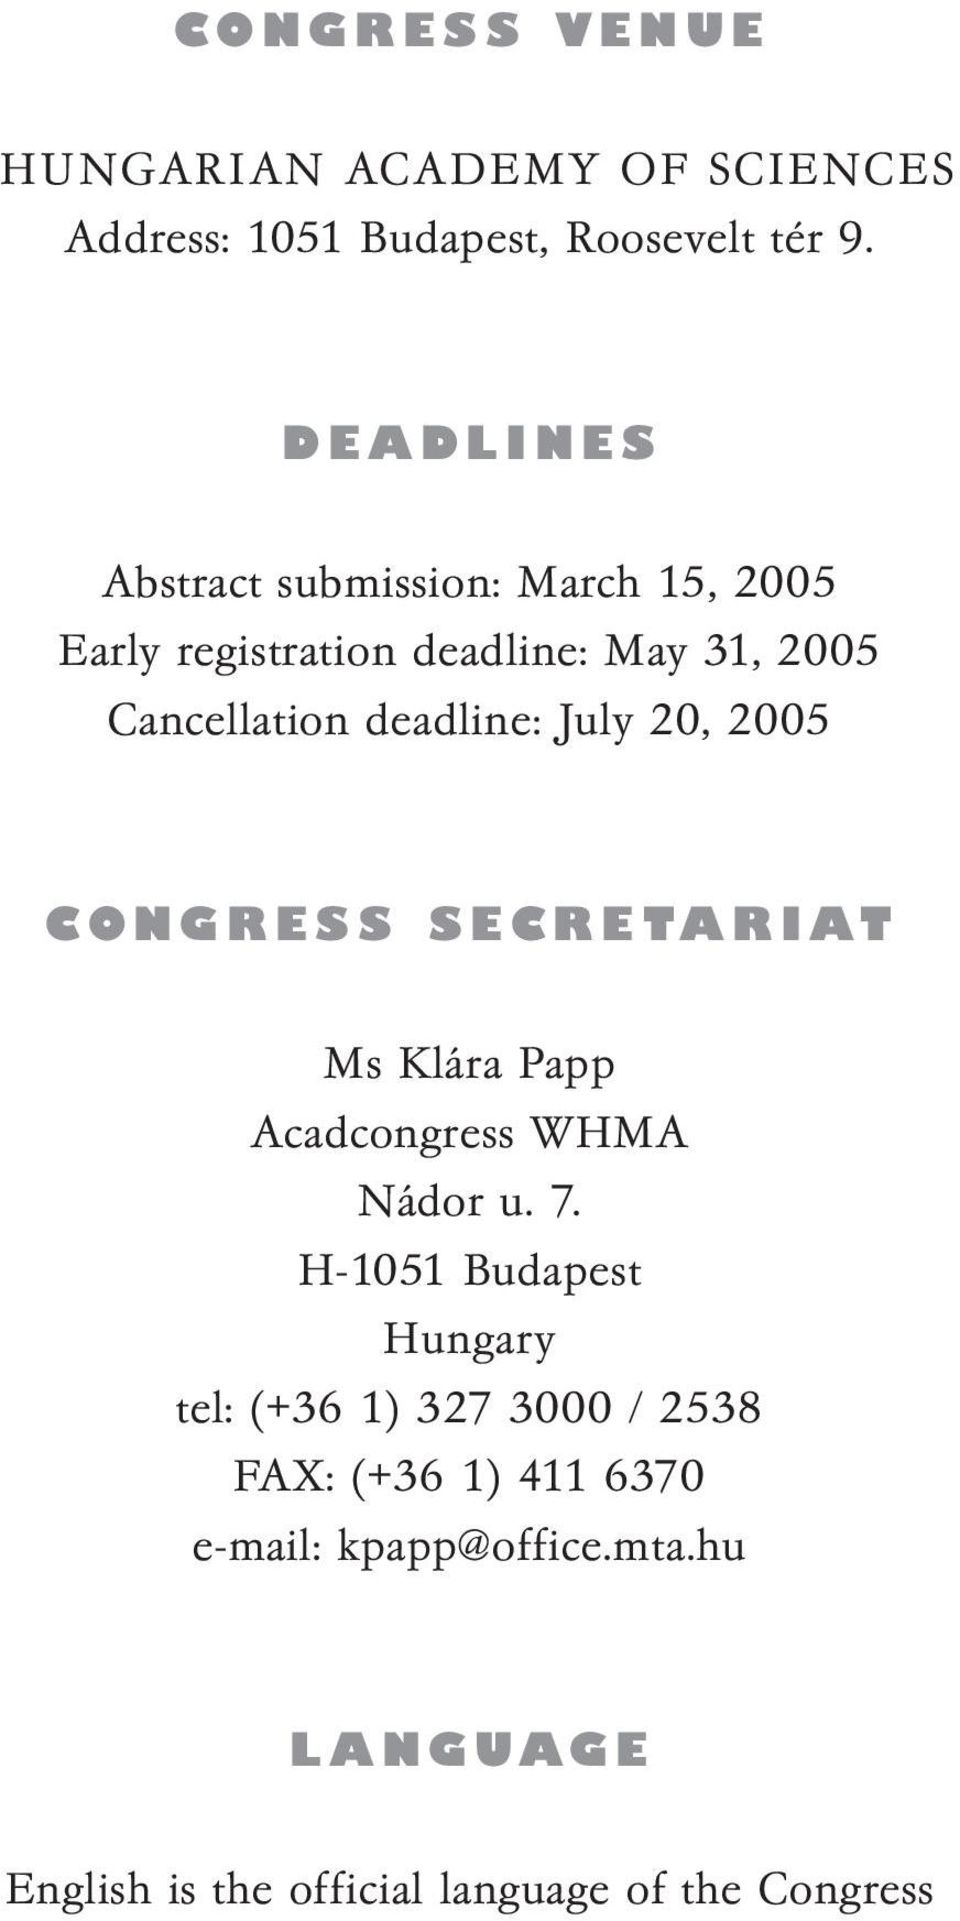 deadline: July 20, 2005 CONGRESS SECRETARIAT Ms Klára Papp Acadcongress WHMA Nádor u. 7.